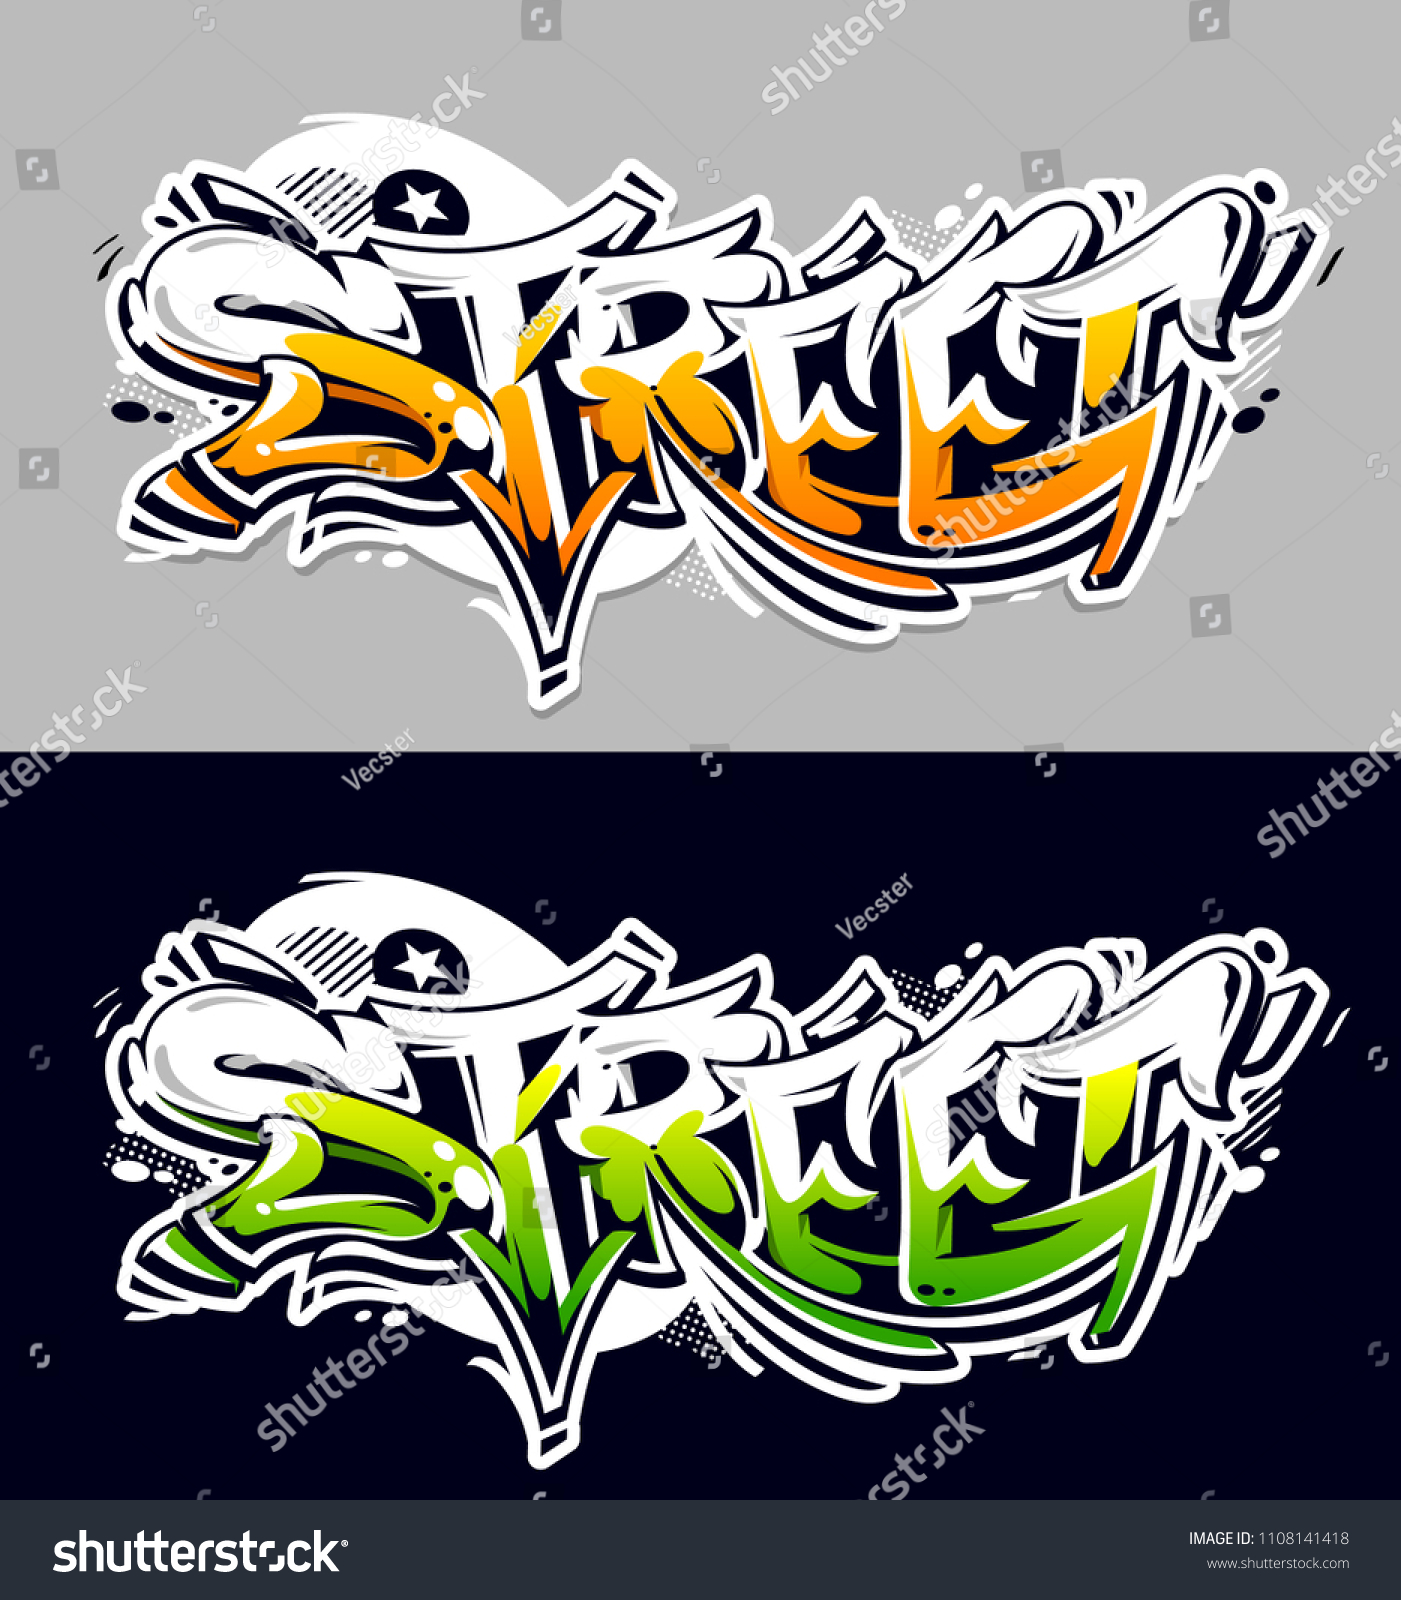 Street graffiti vector lettering abstract three dimensional art two color variations wild style graffiti